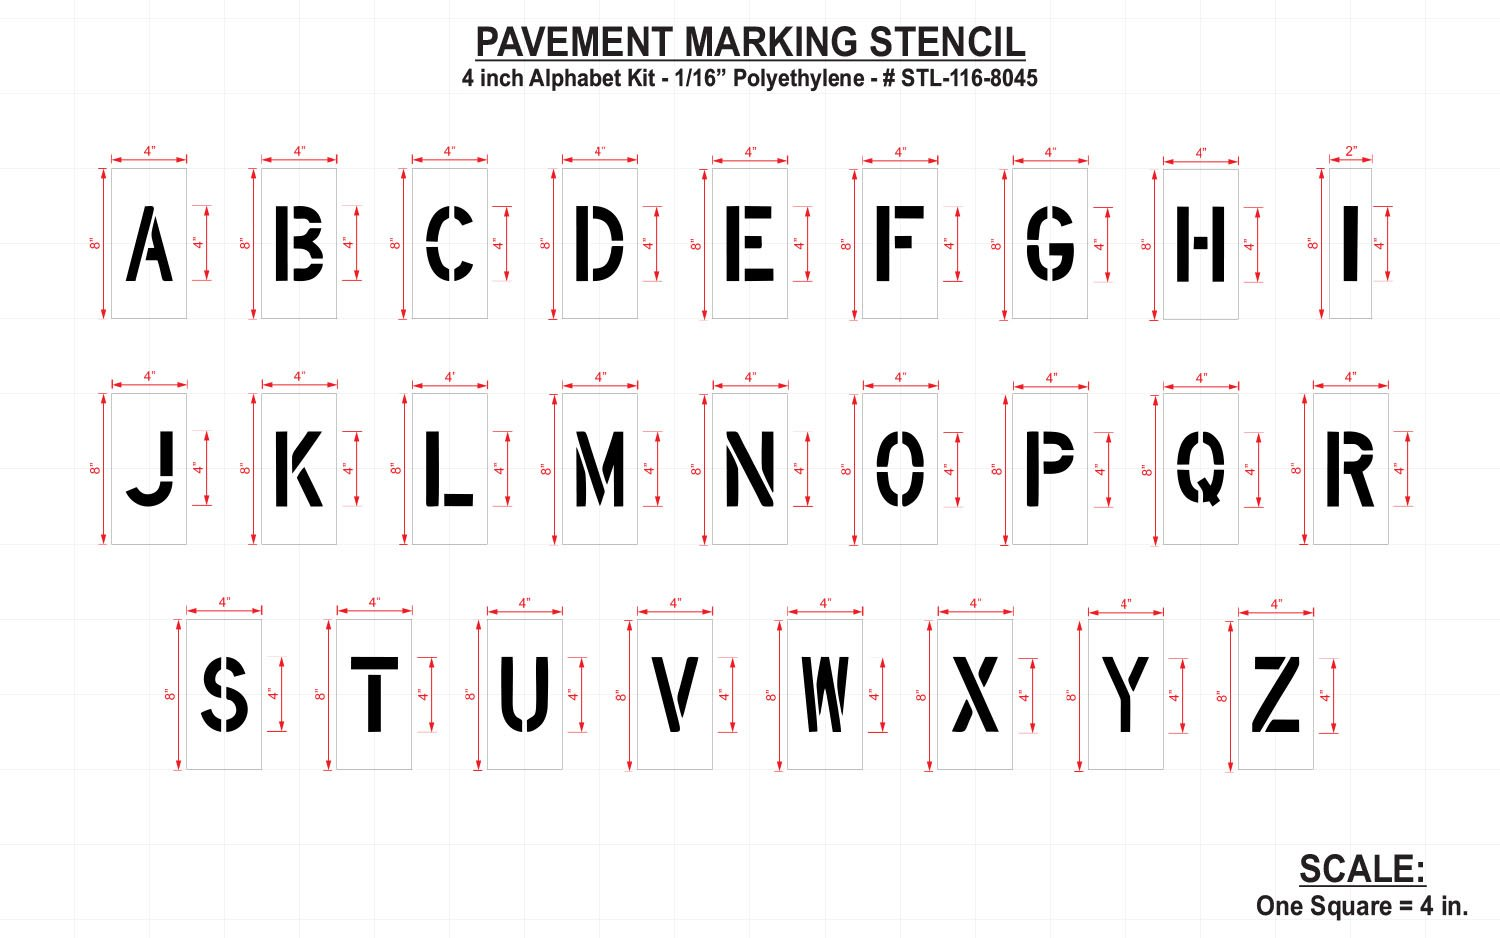 RAE - 4-inch ALPHABET KIT Plastic Letters Paint Stencils, 1/16'' - for use with any paint - STL-116-8045 by RAE Paint (Image #2)